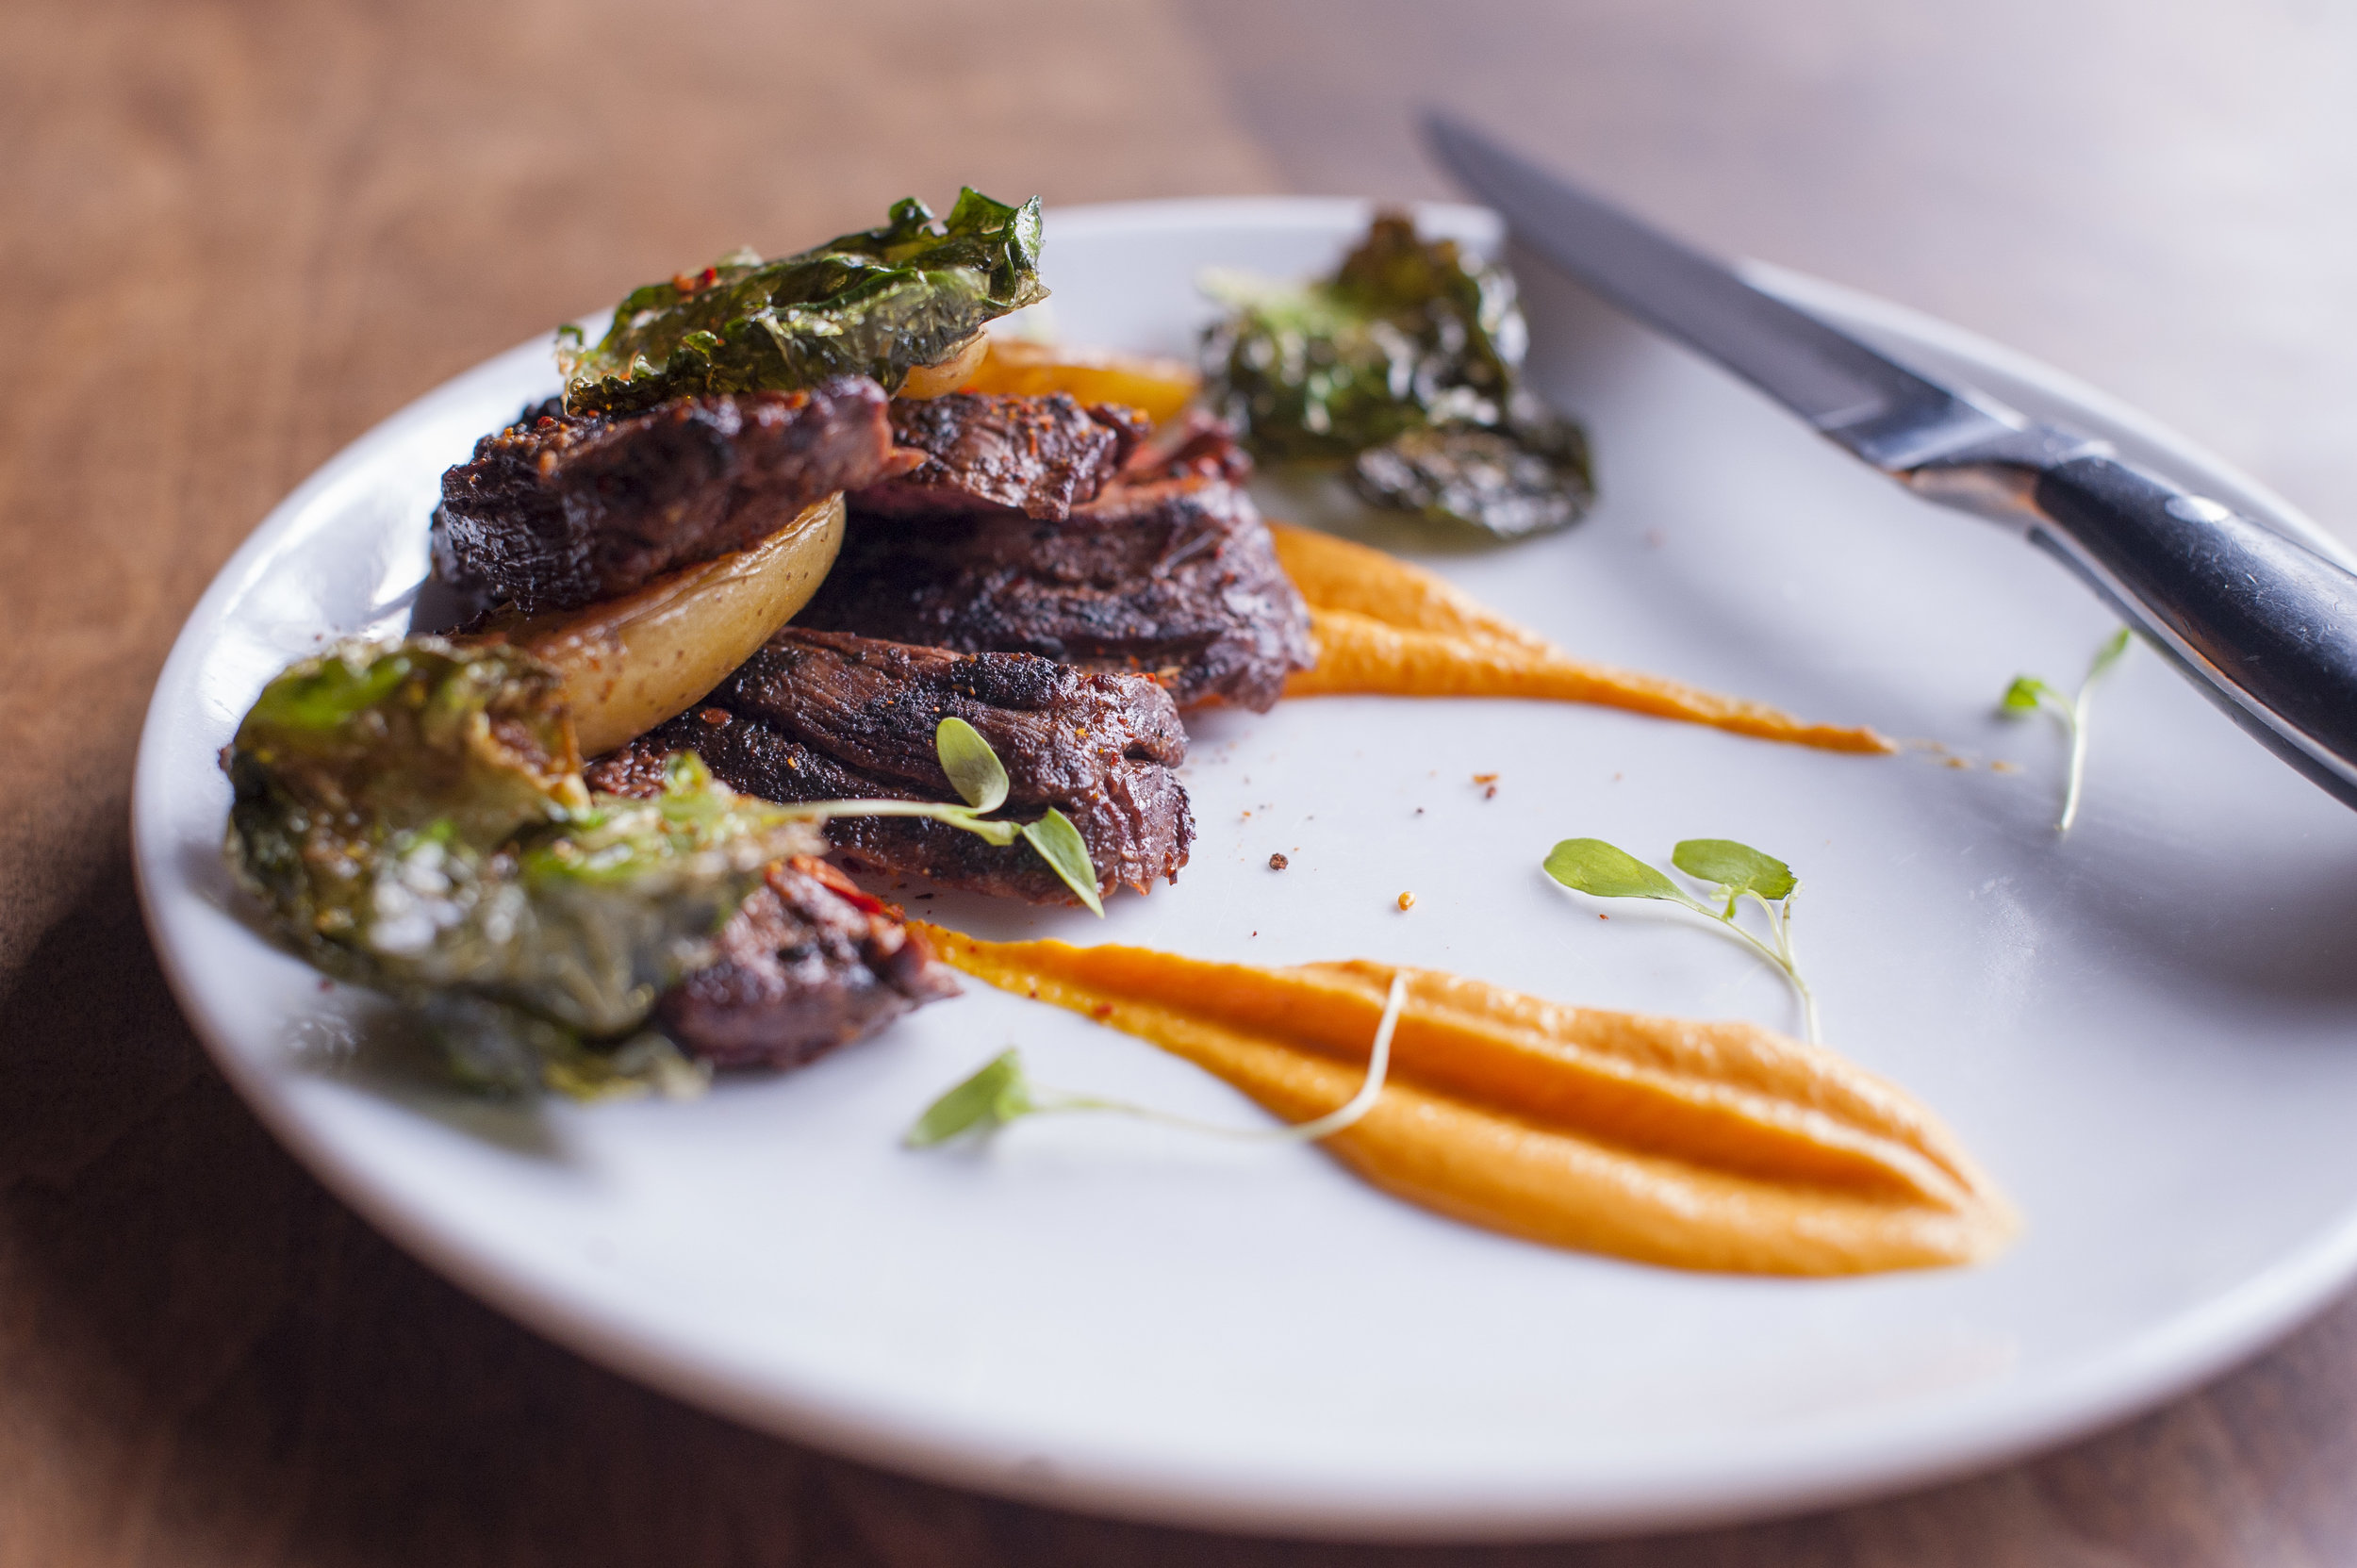 The Grass Fed Skirt Steak elegantly balances skirt steak rubbed with Japanese togarashi spice with a cooling vanilla carrot puree to provide a clean finish. It's also served with crispy brussel sprout chips and a side of fingerling potatoes.